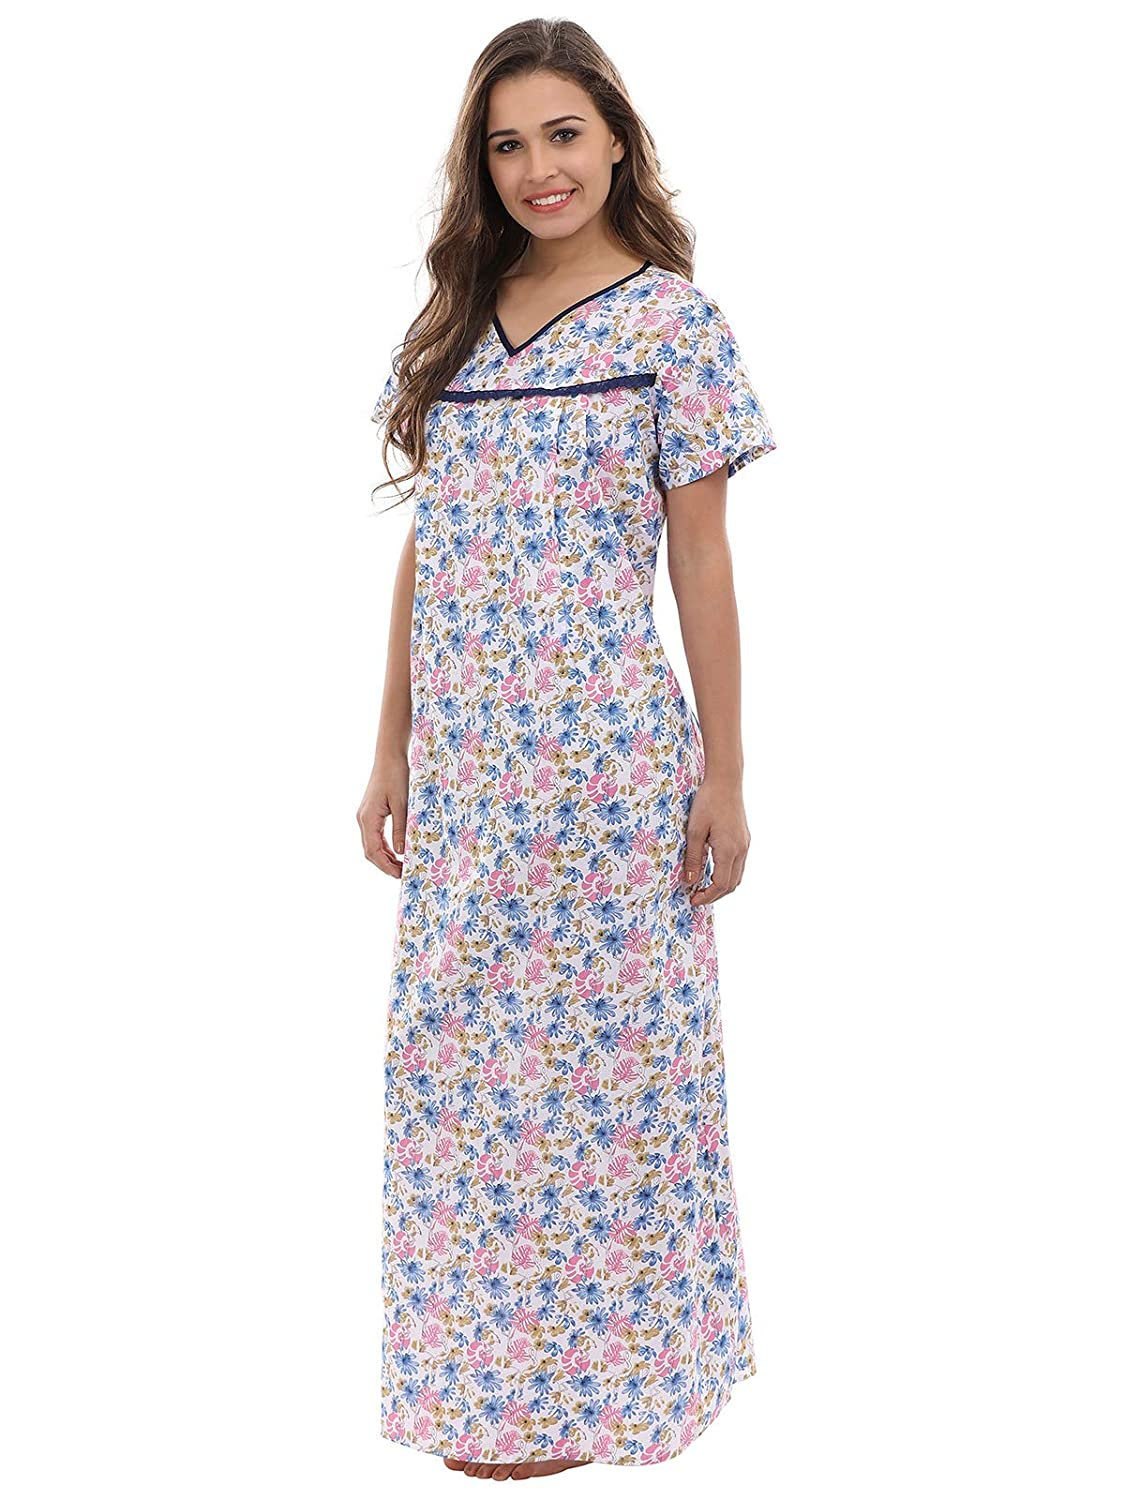 aa319a21bb86d Clovia Women's Cotton Floral Print Maternity Nighty: Amazon.in: Clothing &  Accessories